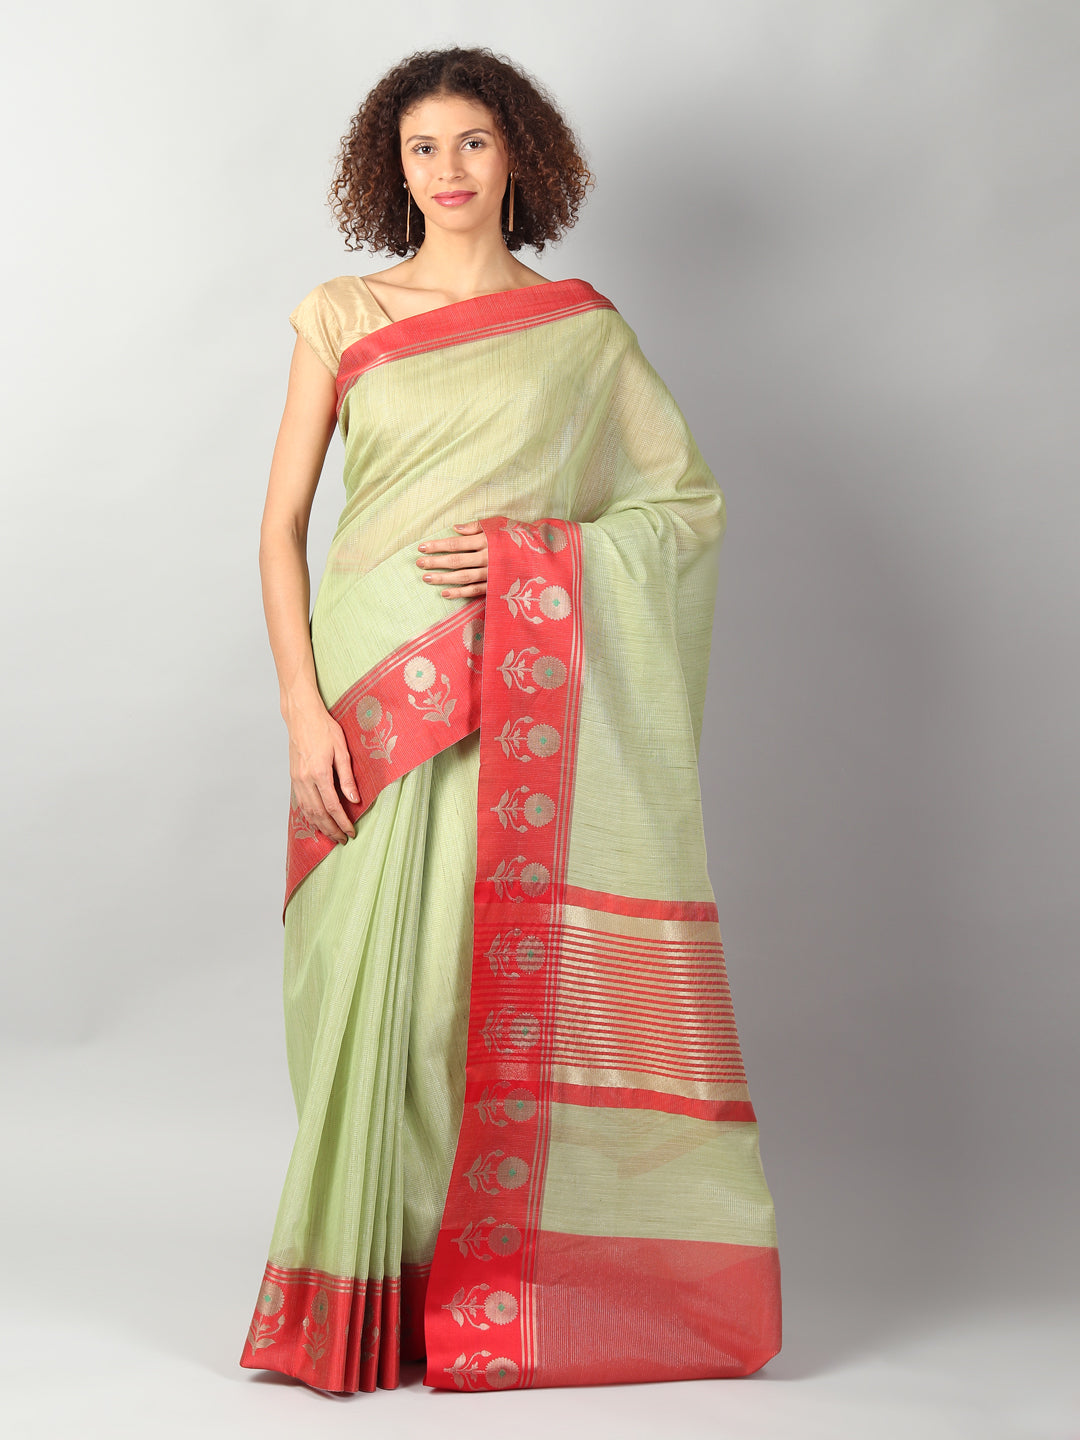 Zari kota in pastel green with red border